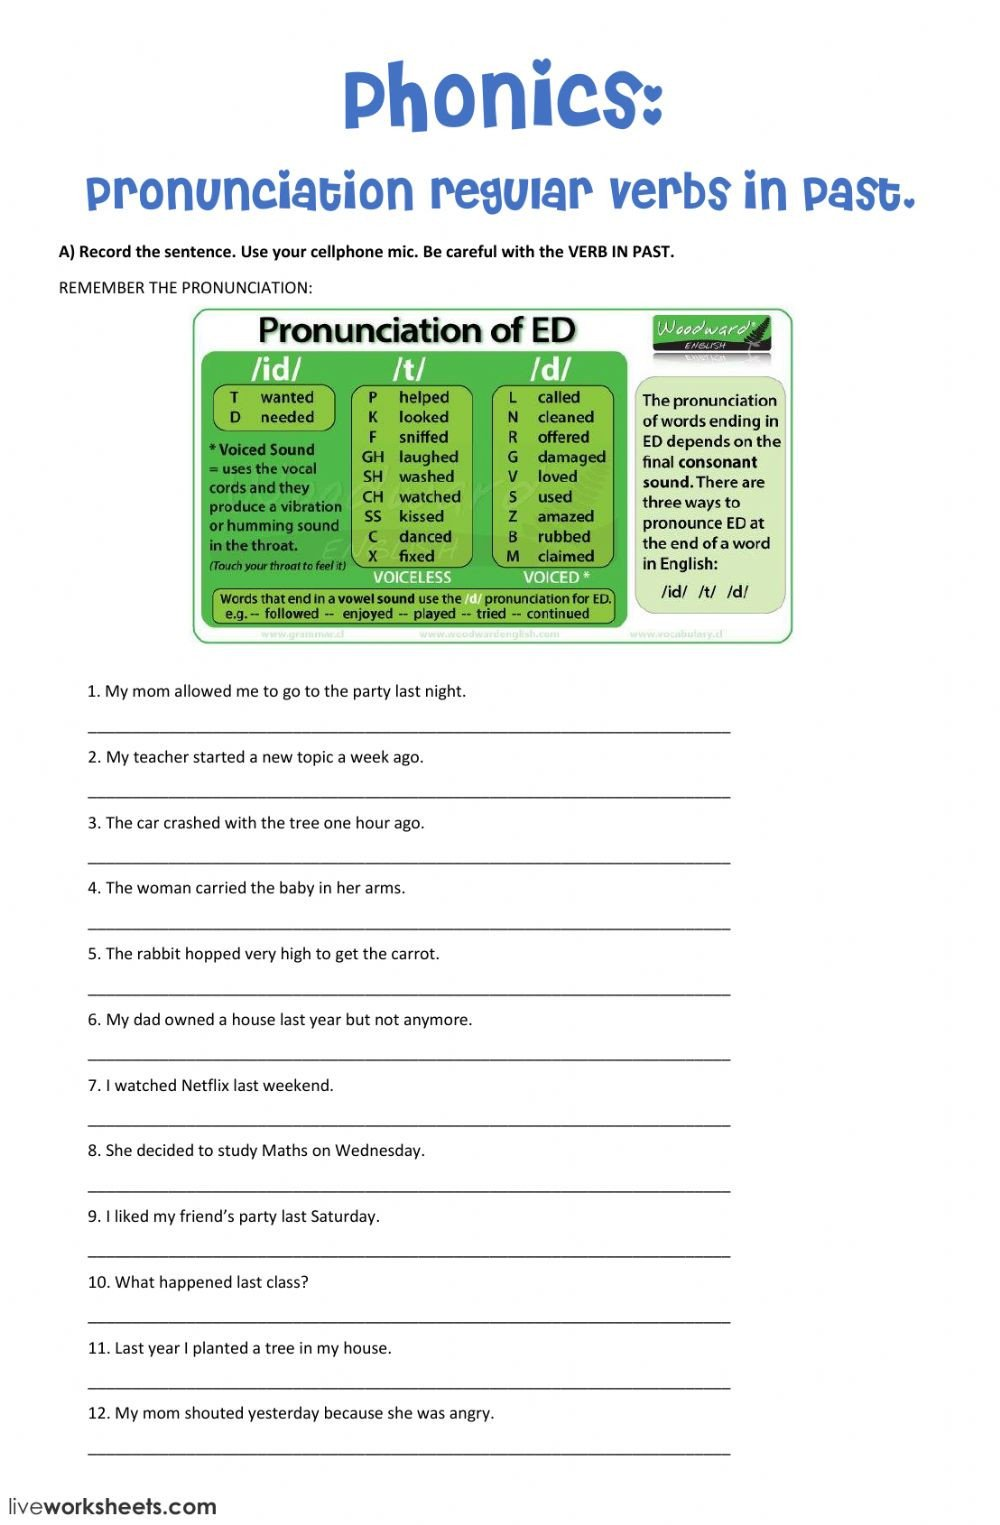 Pronunciation ed endings phonics vs9647ey